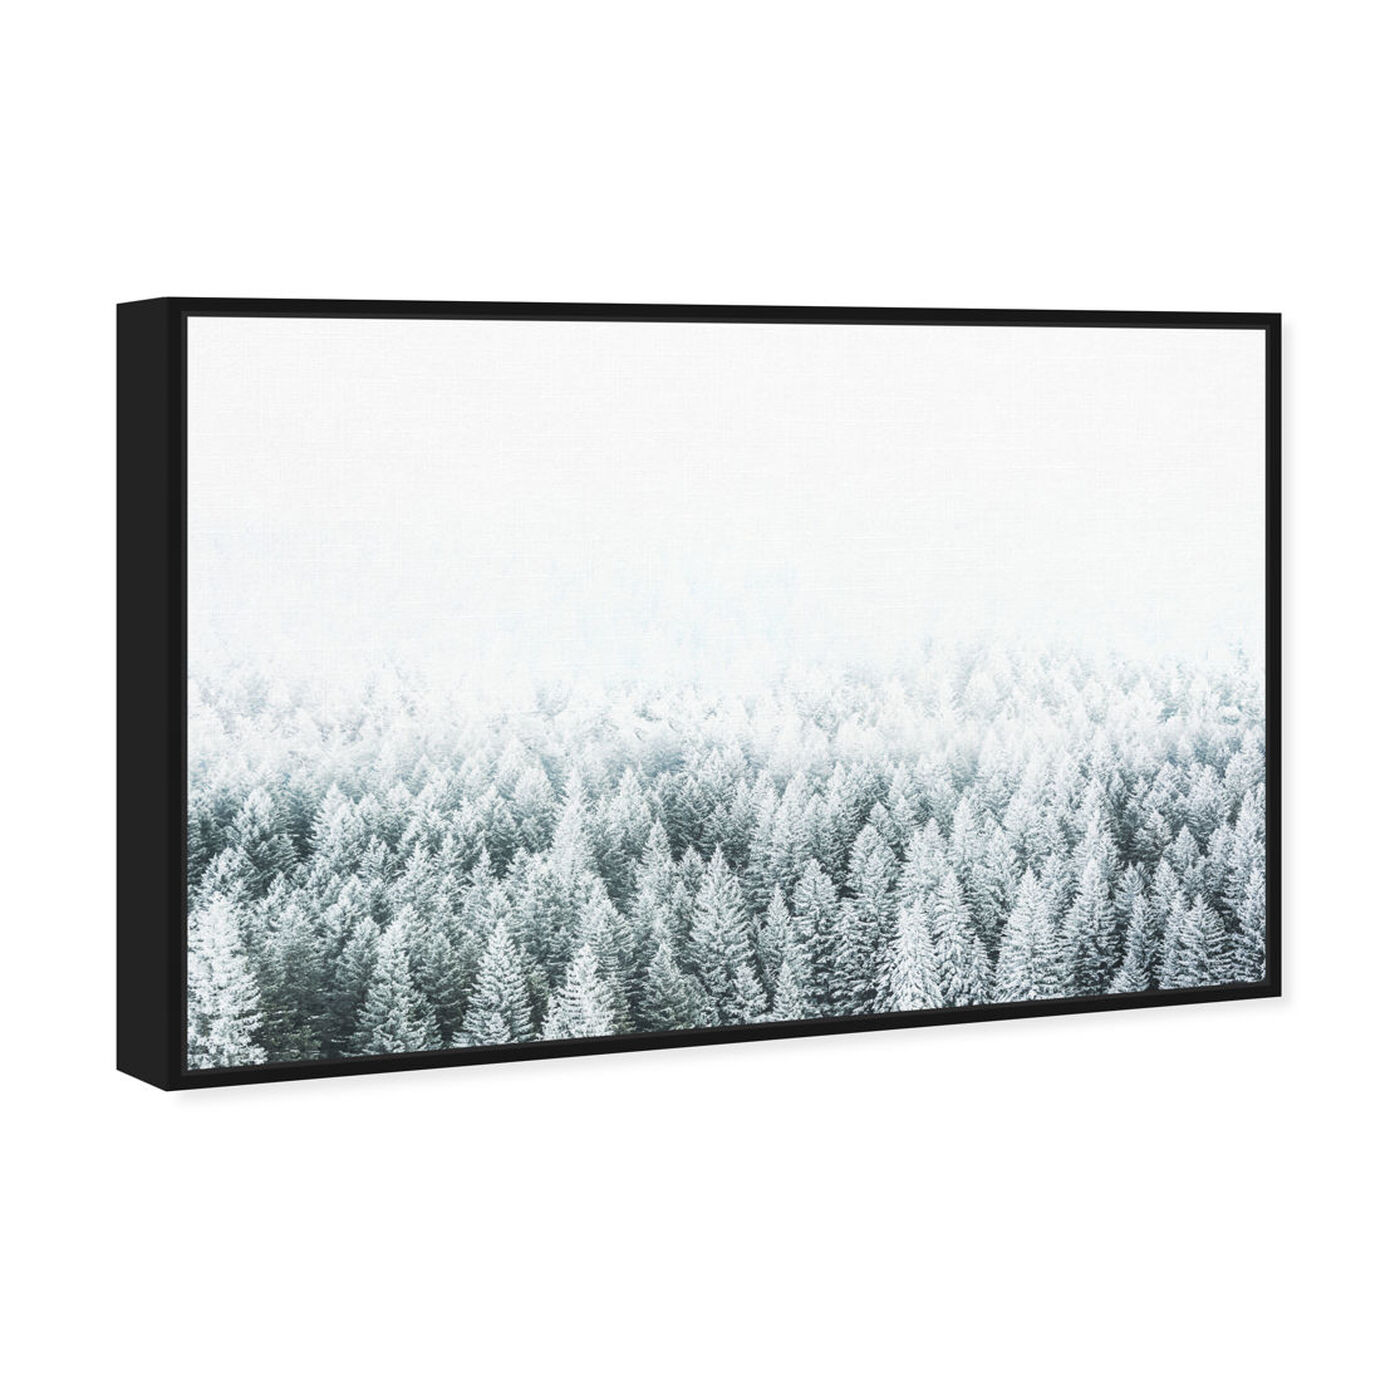 Angled view of Pine Forest featuring nature and landscape and forest landscapes art.